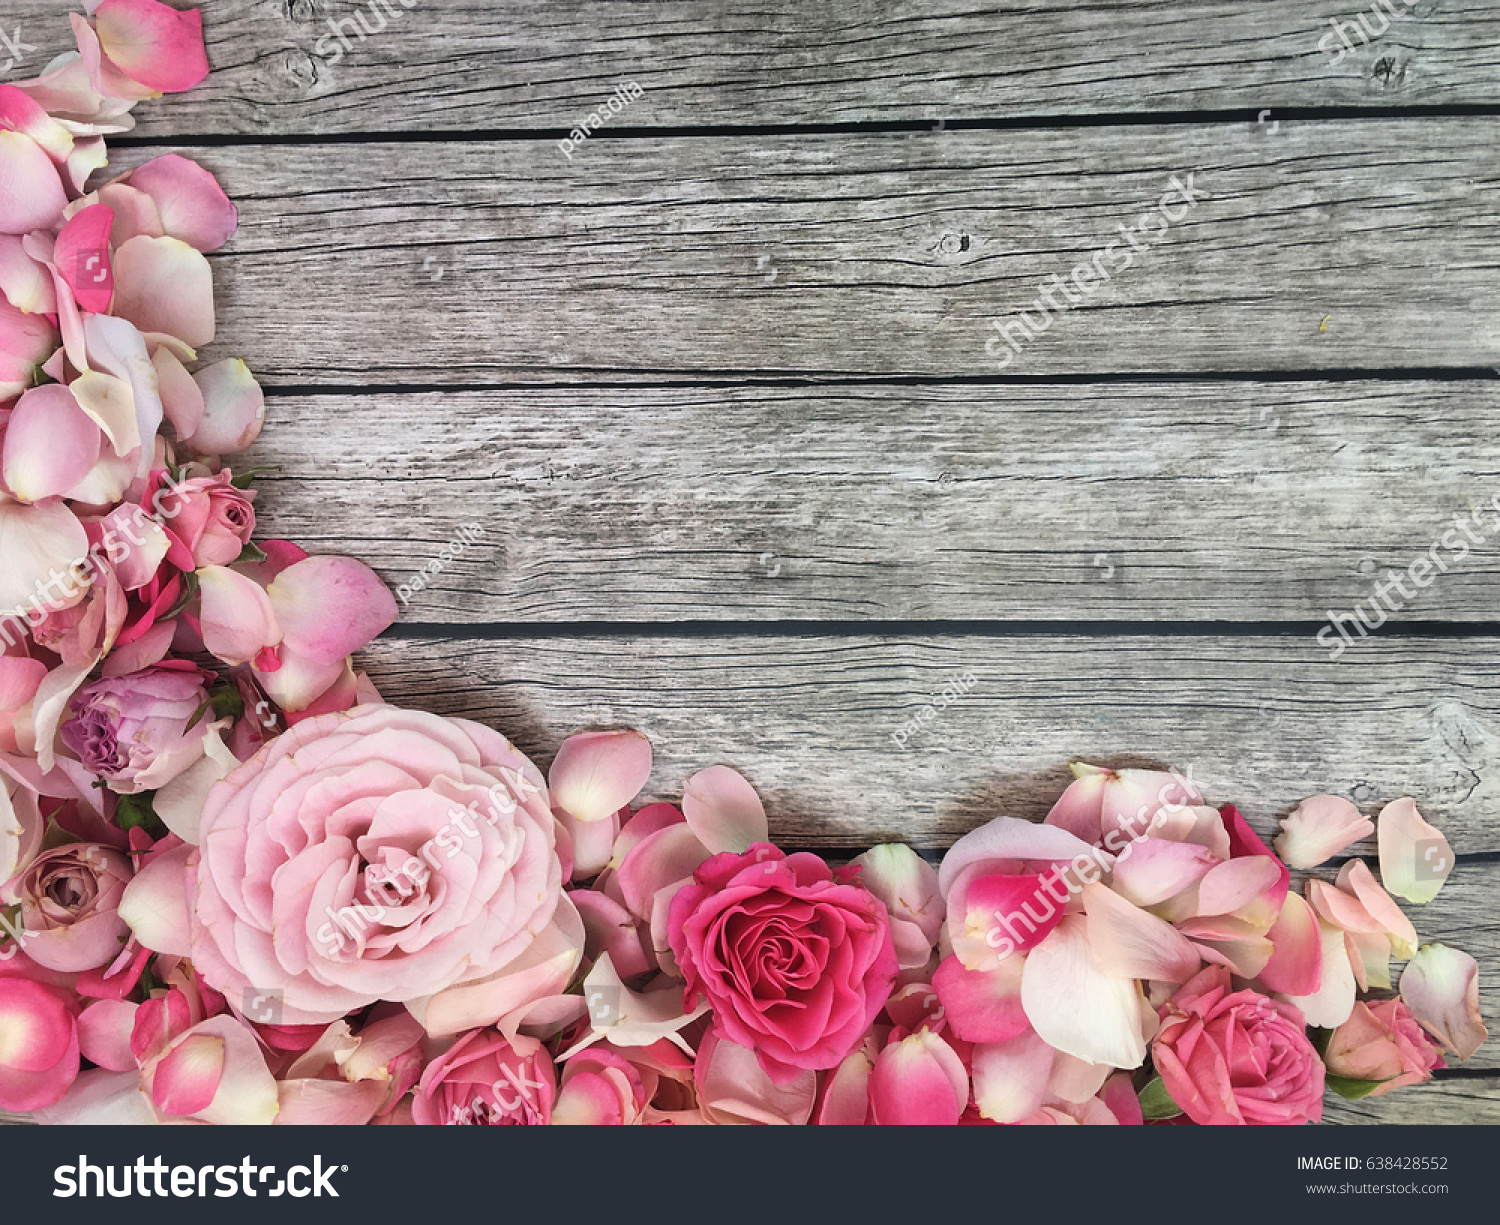 Shabby Roses Wallpaper And Petals On Rustic Wooden Background